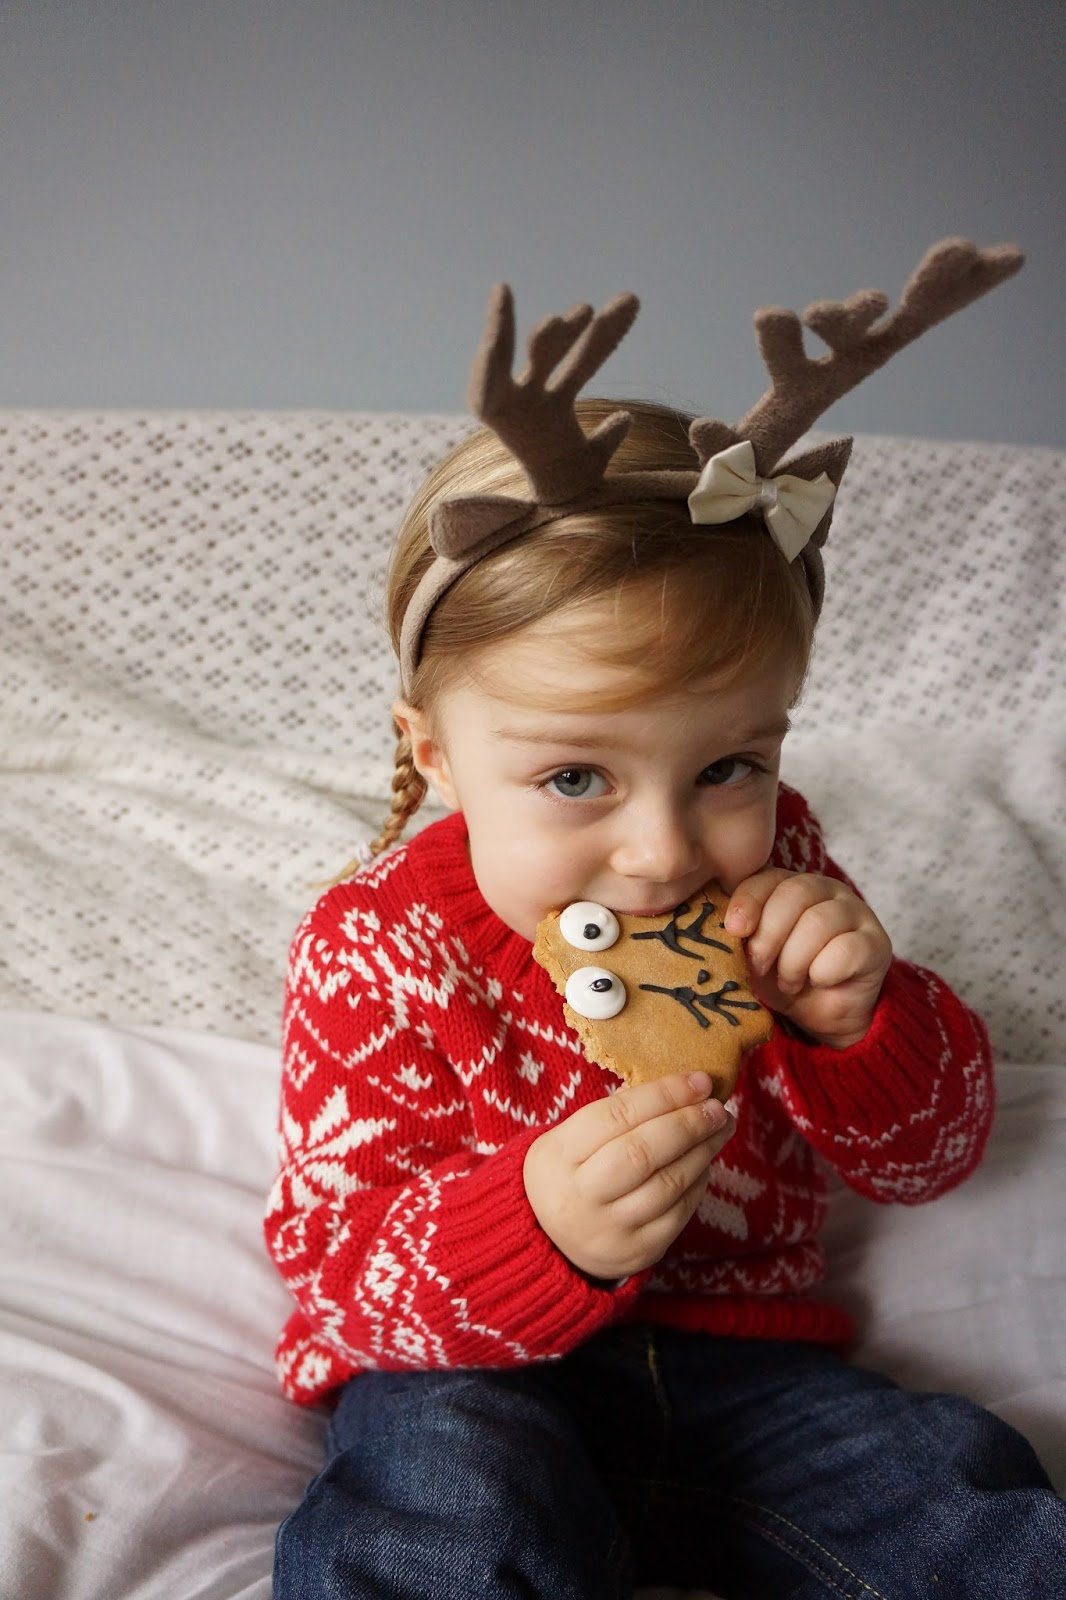 christmas toddler portrait with reindeer antlers and eating reindeer biscuit